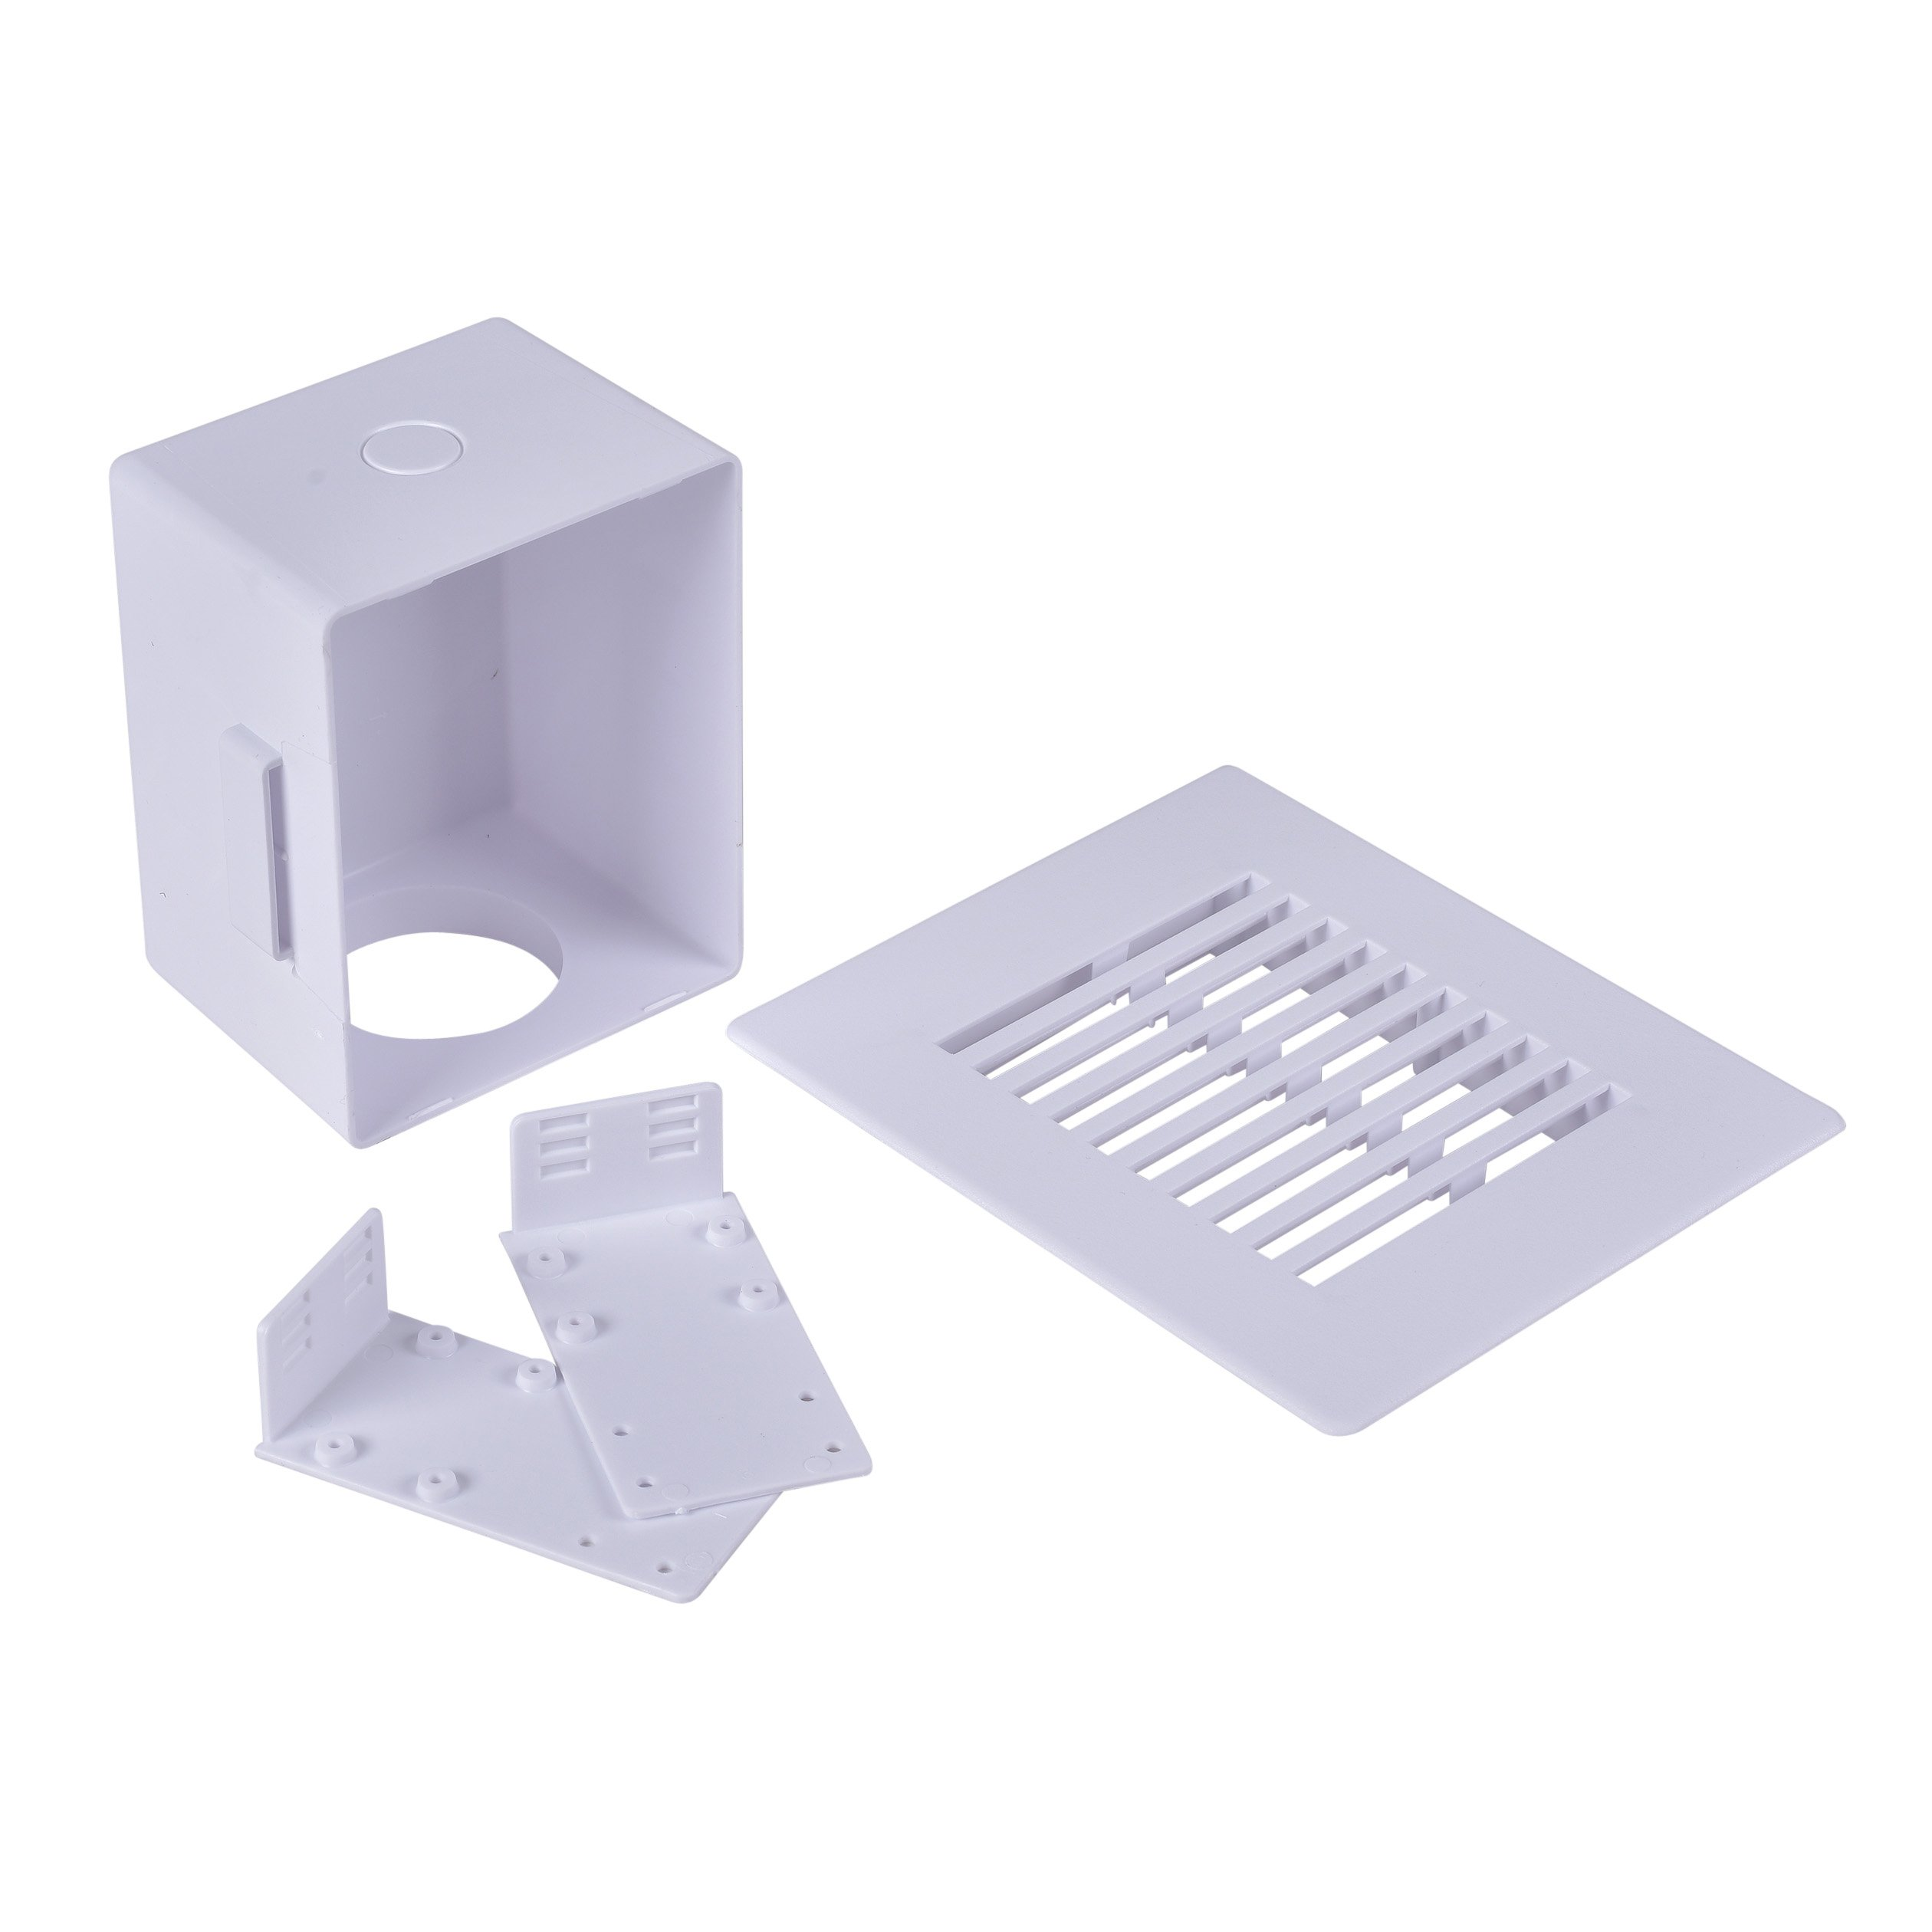 Oatey 39260 AAV Box Kit 4-1/2'' X 5-3/4'' for 6 or 20 DFU AVVs With 1-1/2'' or 2'' adapters